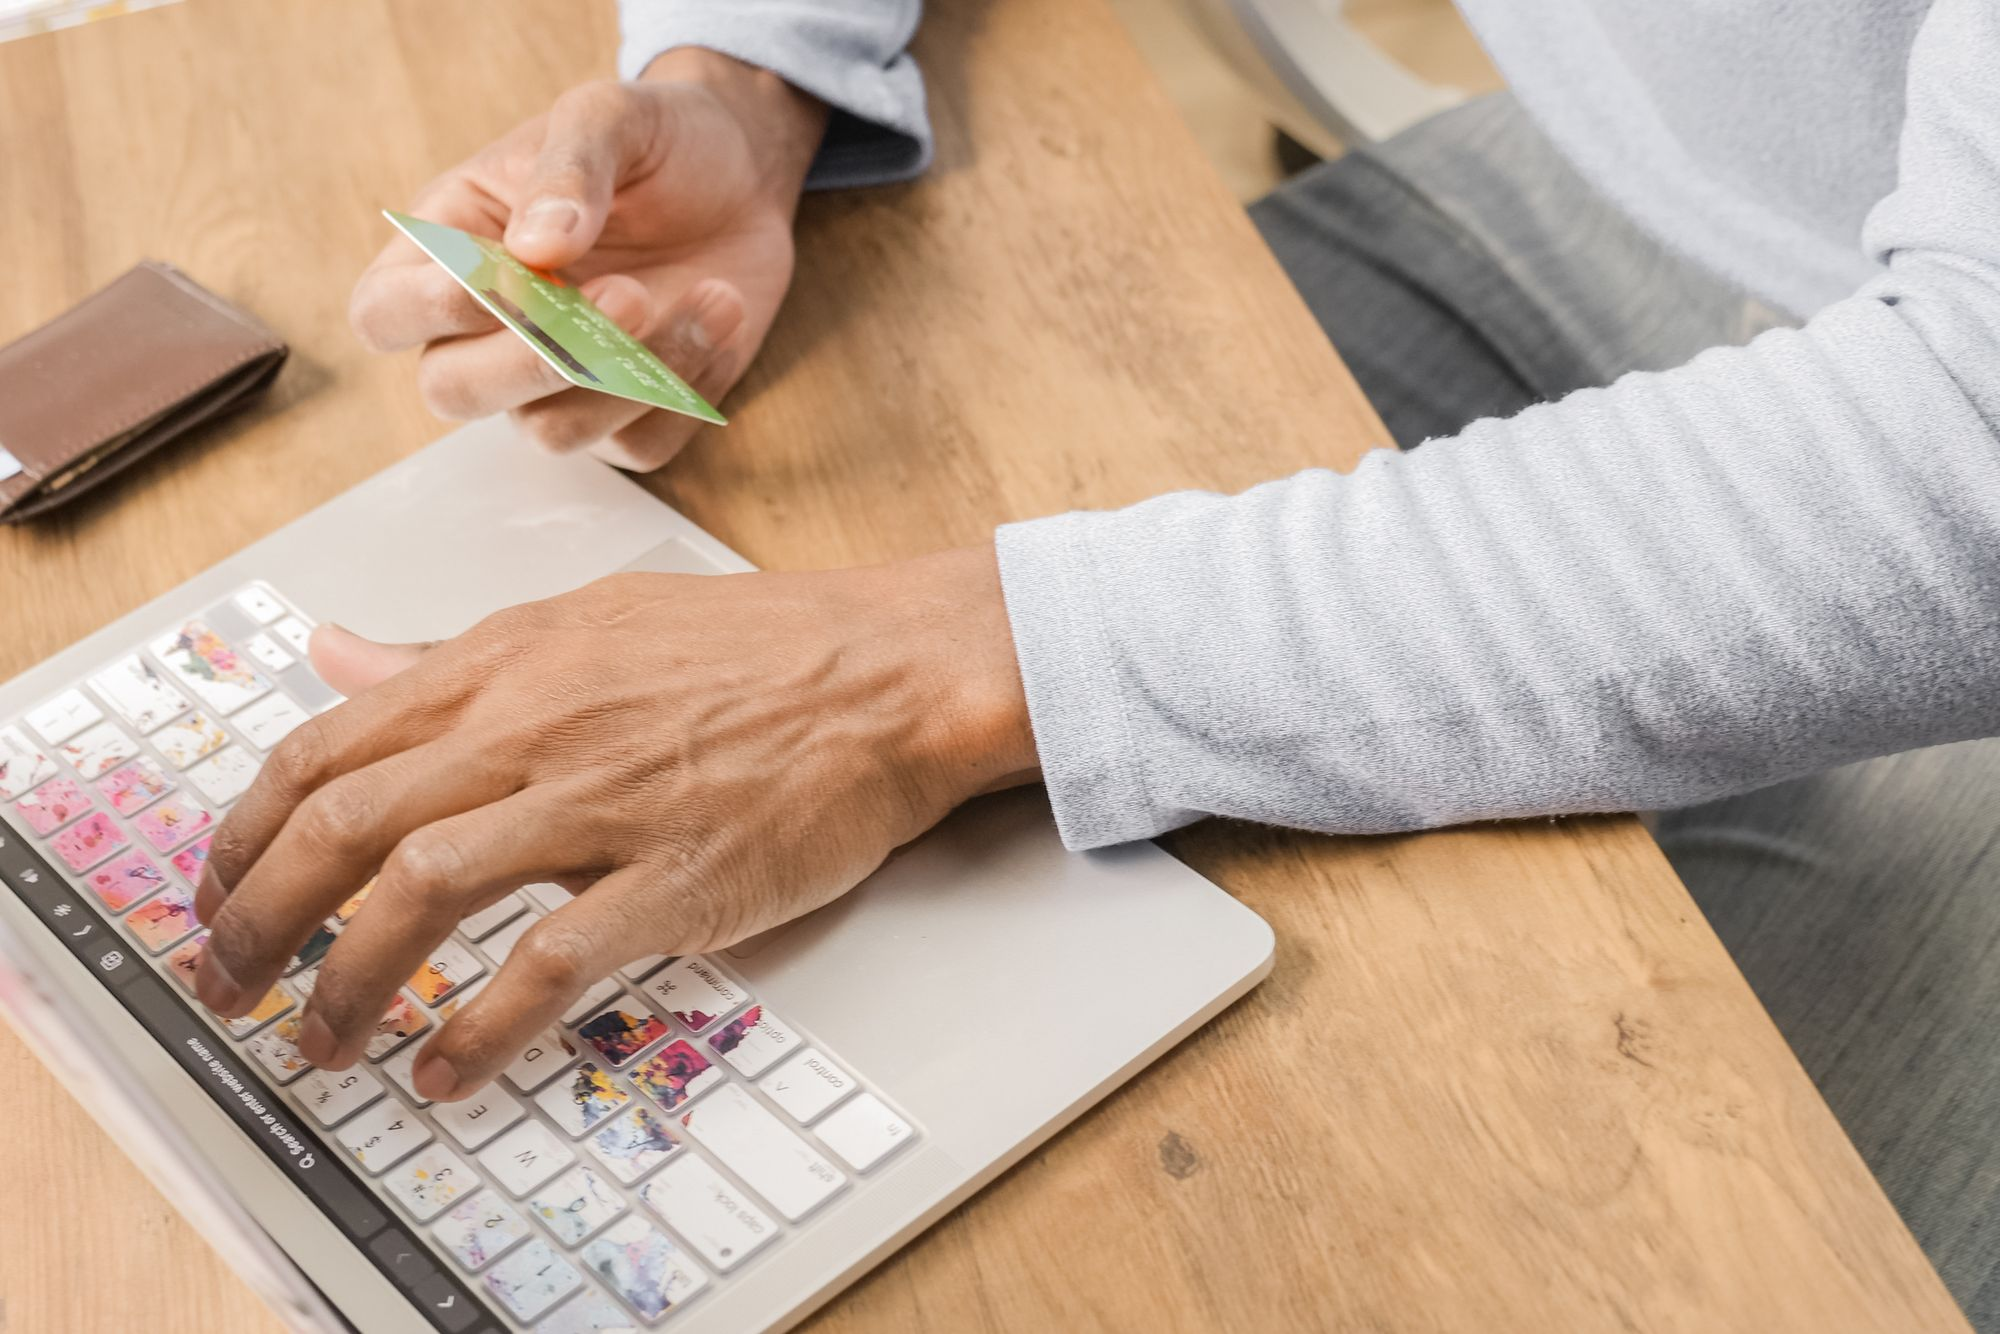 CREDIT SCORES YOU NEED FOR DIFFERENT PURCHASES